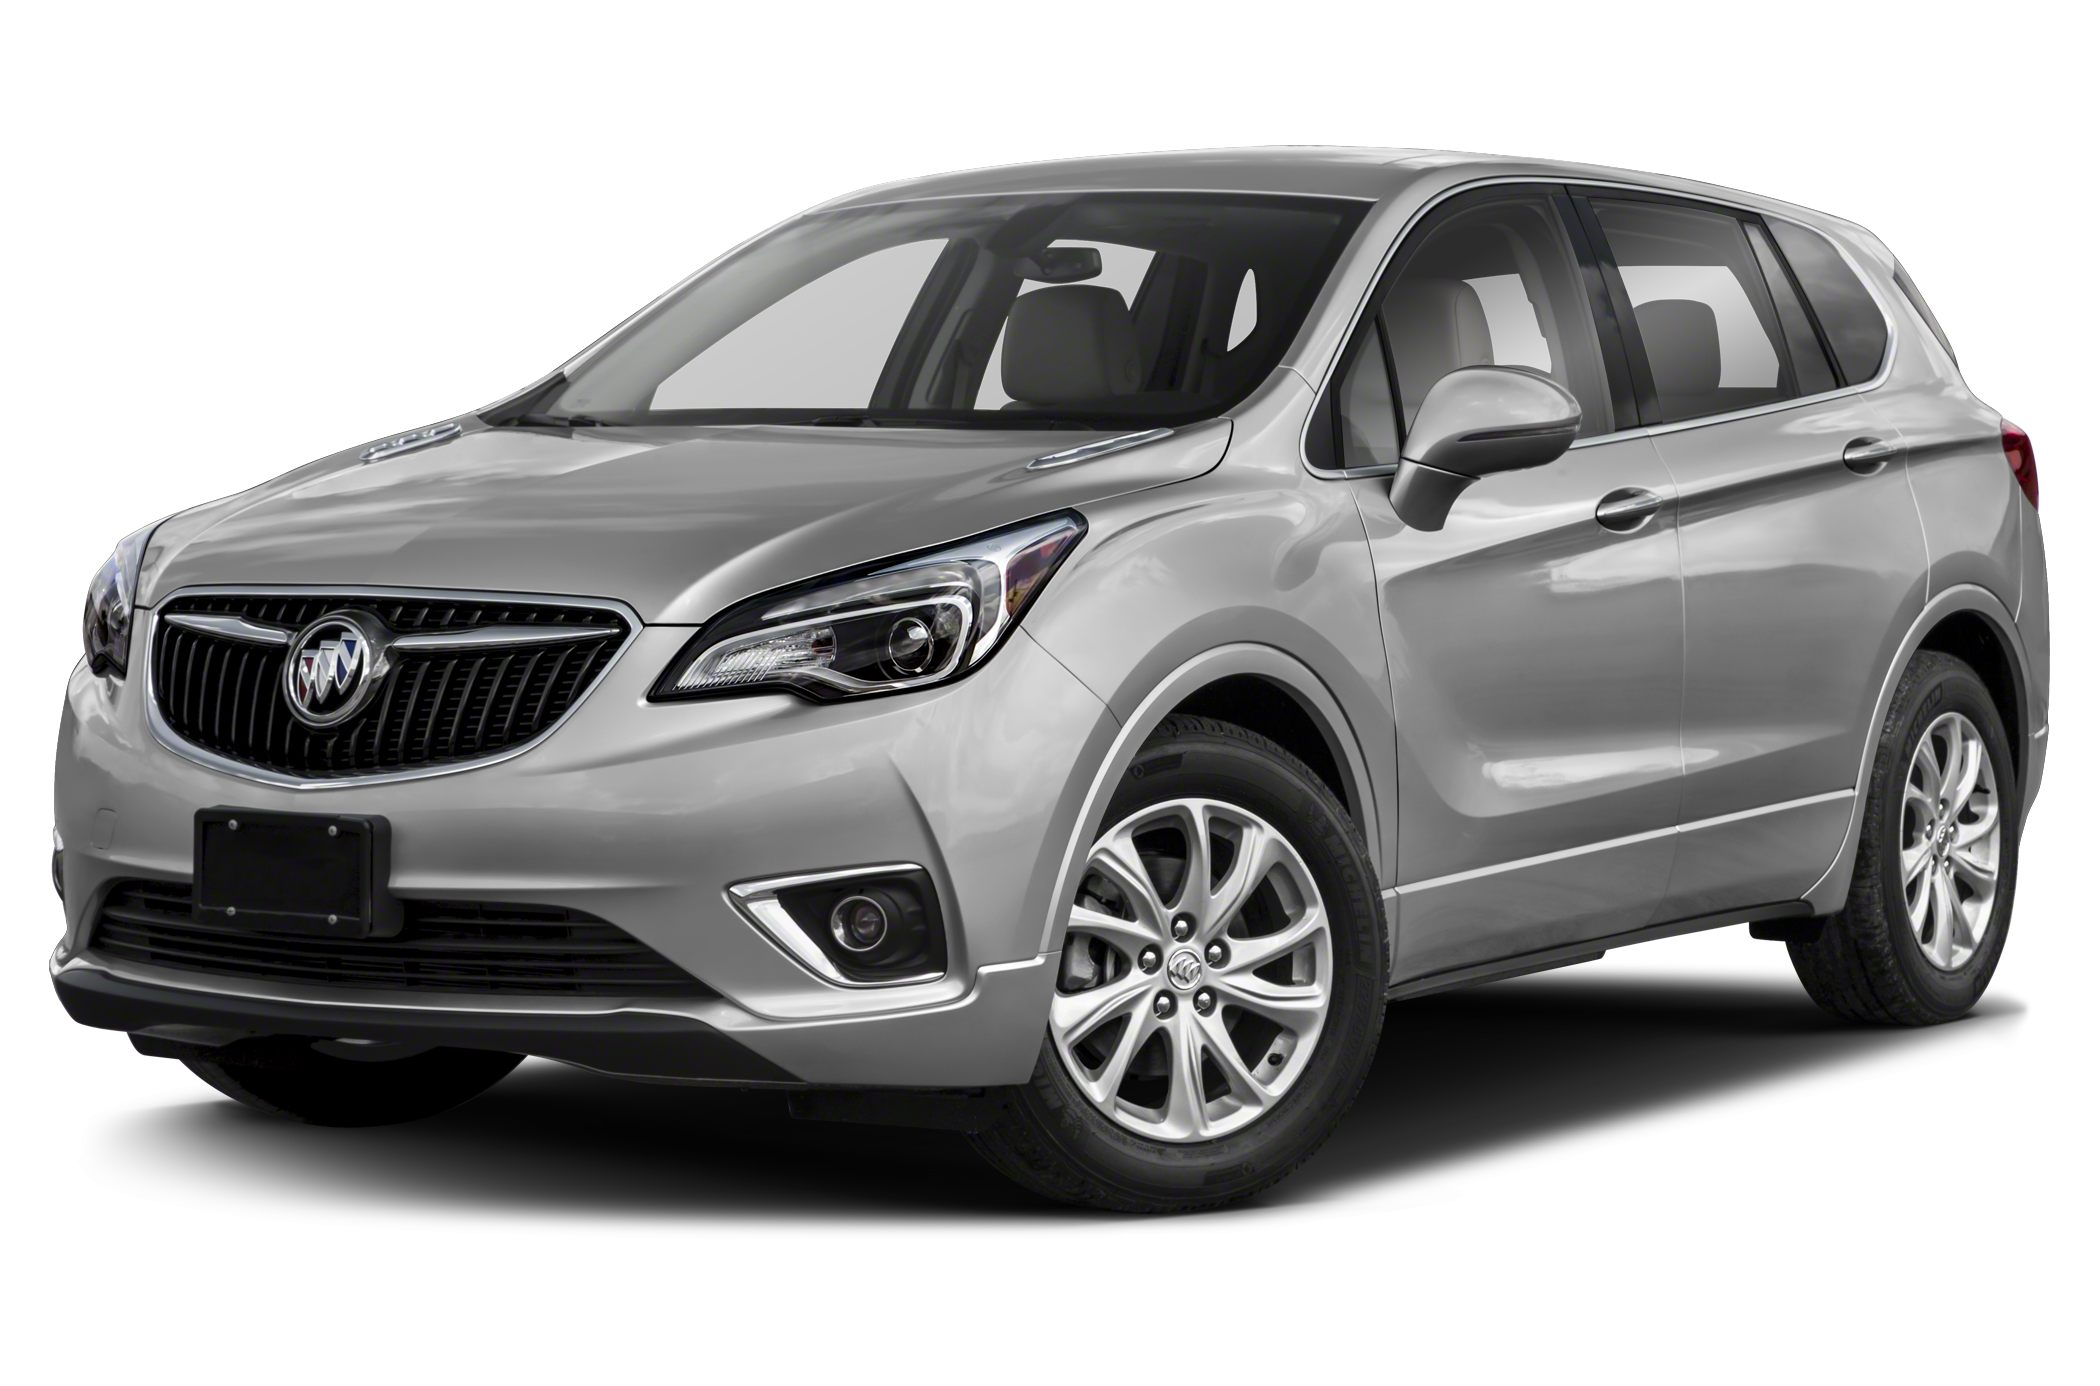 2020 Buick Envision Specs And Prices 2021 Buick Envision Build, Lease, Cost